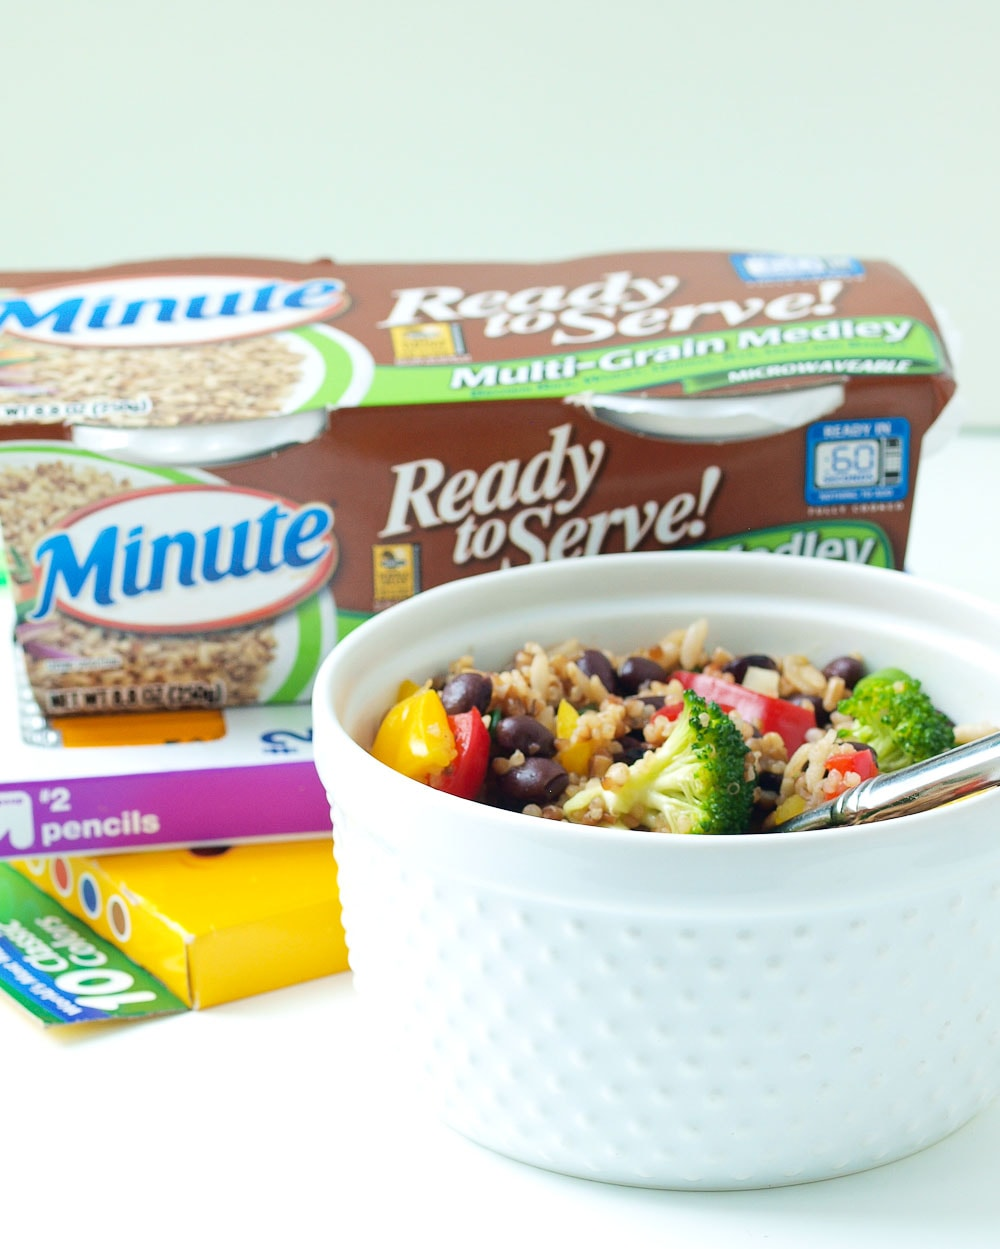 Rainbow Rice and Beans---This healthy lunch is made quickly with Minute Ready to Serve Whole Grain Medley Rice Blend. The portion controlled, portable precooked grains make this the perfect lunch to pack for school or work!